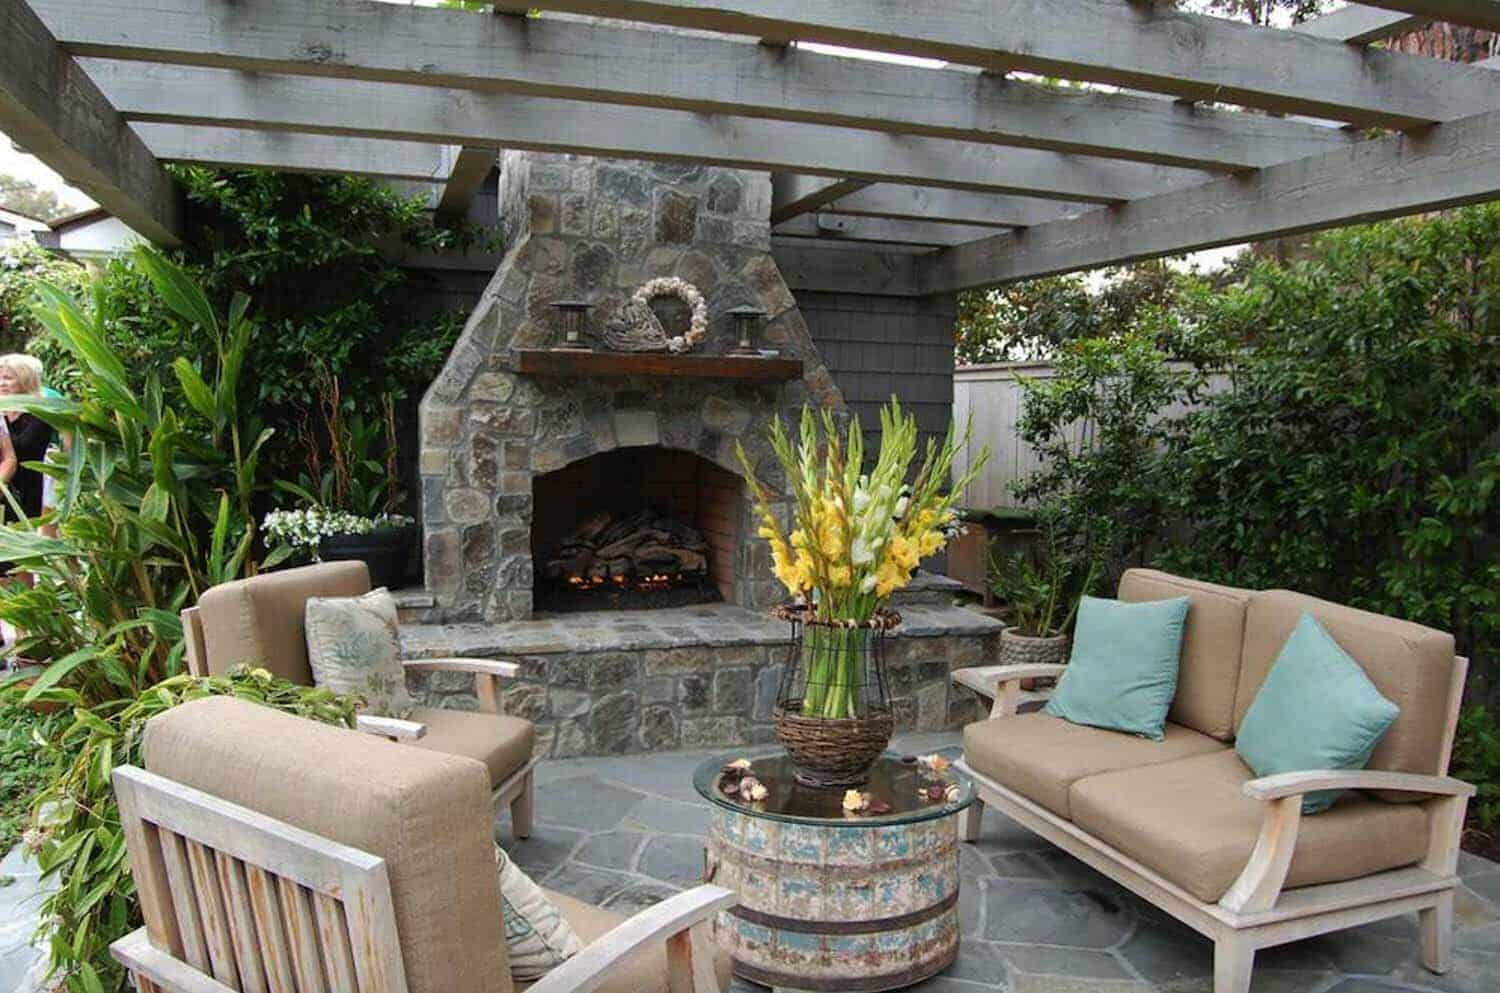 30+ Irresistible outdoor fireplace ideas that will leave ... on Outdoor Fireplaces Ideas  id=56434